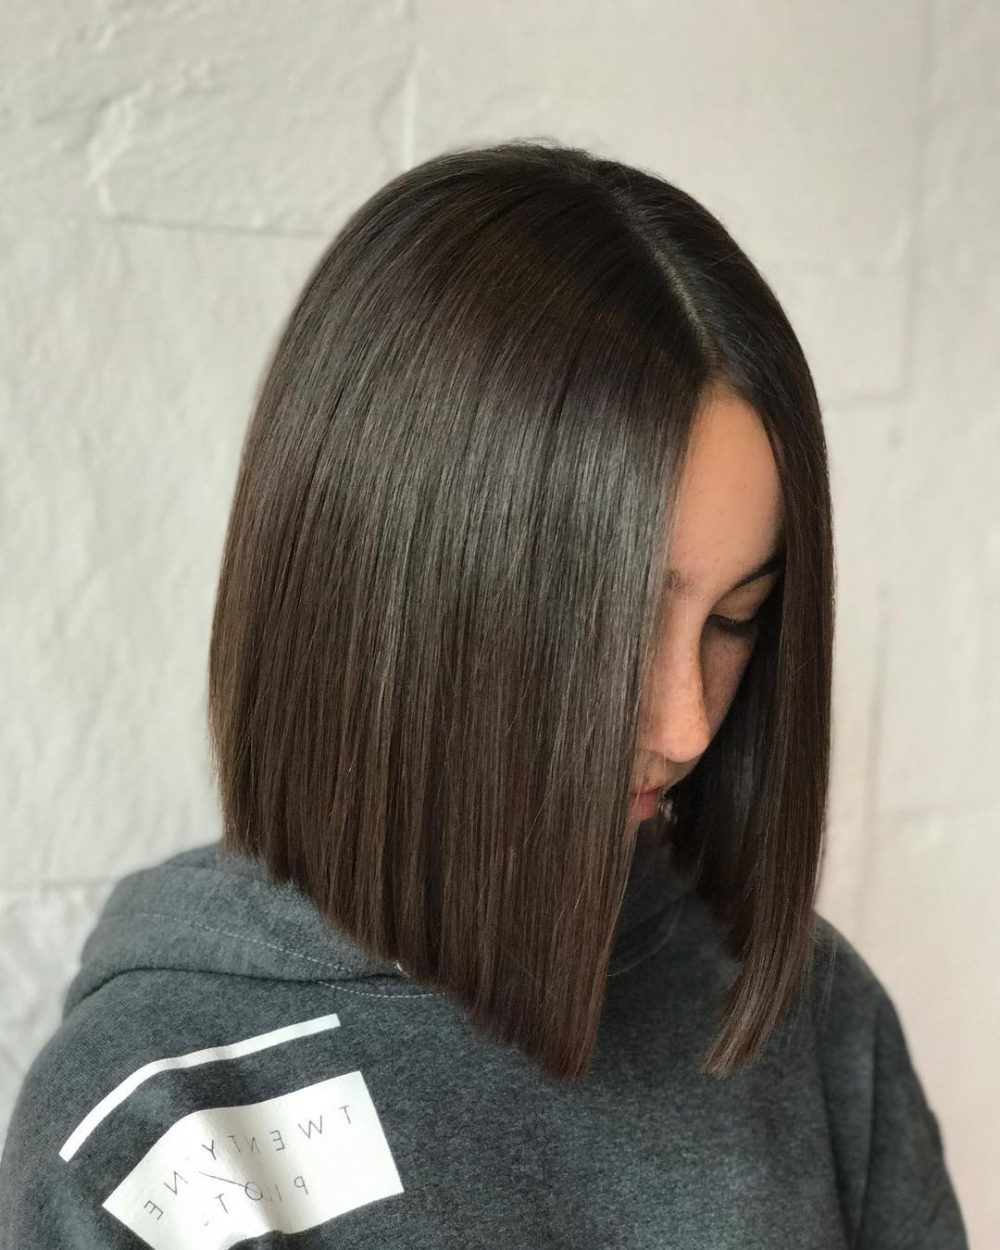 24 Flattering Middle Part Hairstyles In 2019 Regarding 2020 Blunt Wavy Bob Hairstyles With Center Part (View 1 of 20)